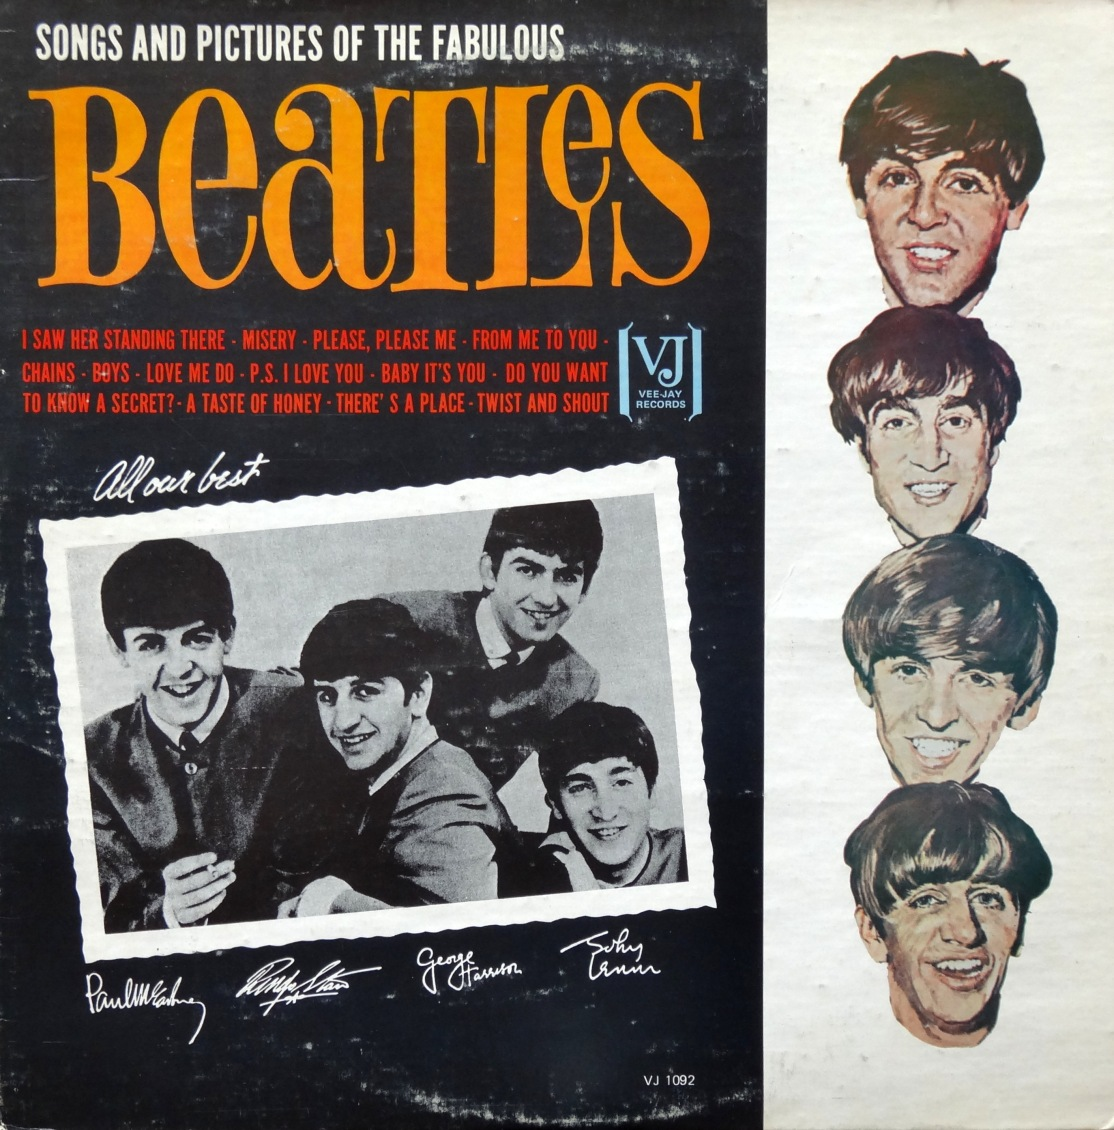 Beatles Songs Pictures front